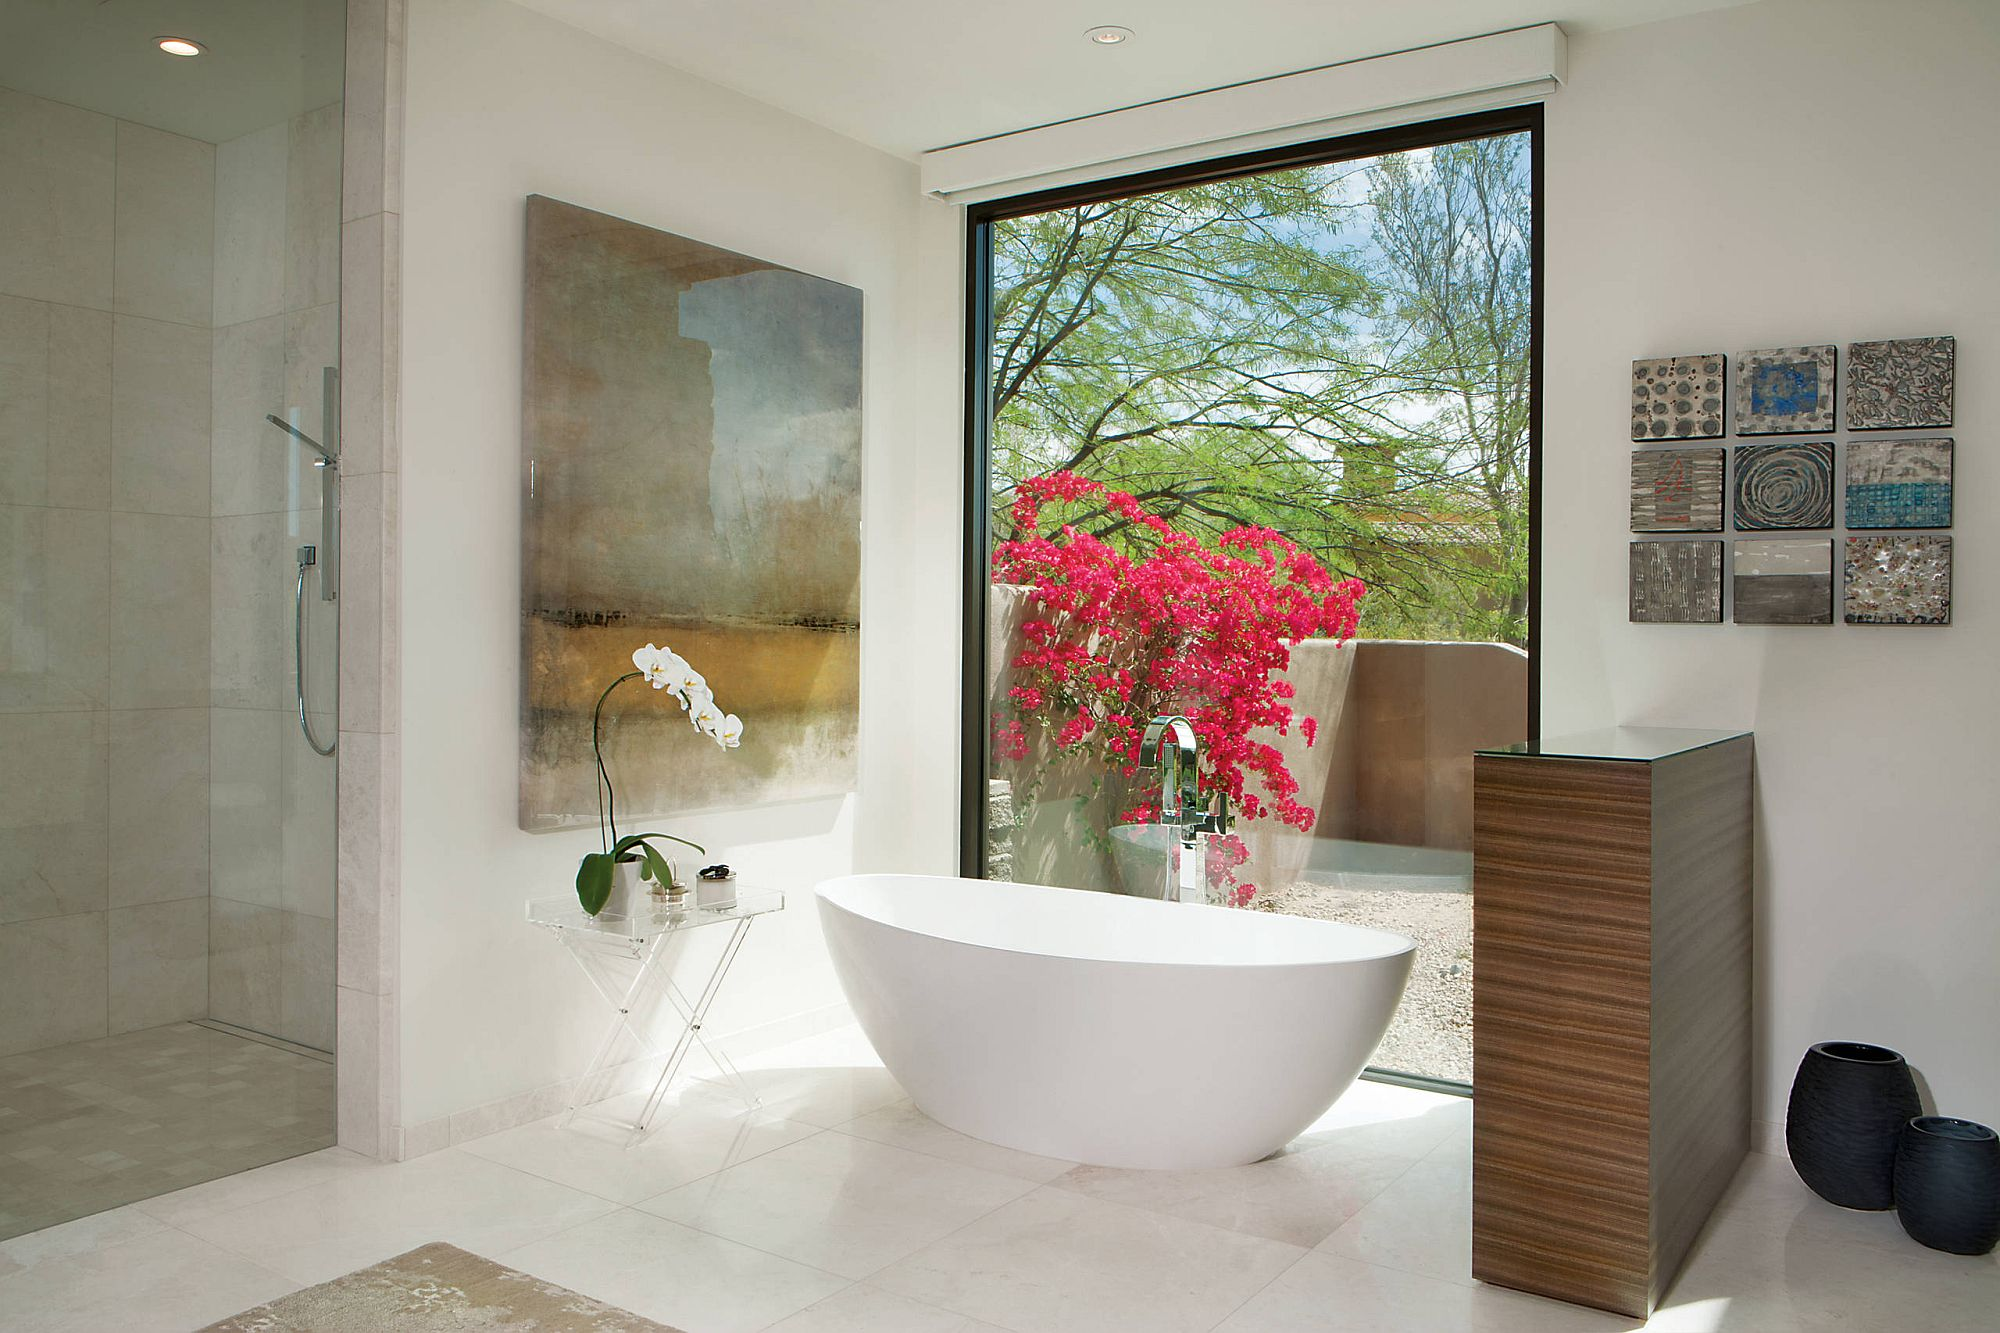 Choosing the right wall art for the contemporary bathroom with spa-inspired look